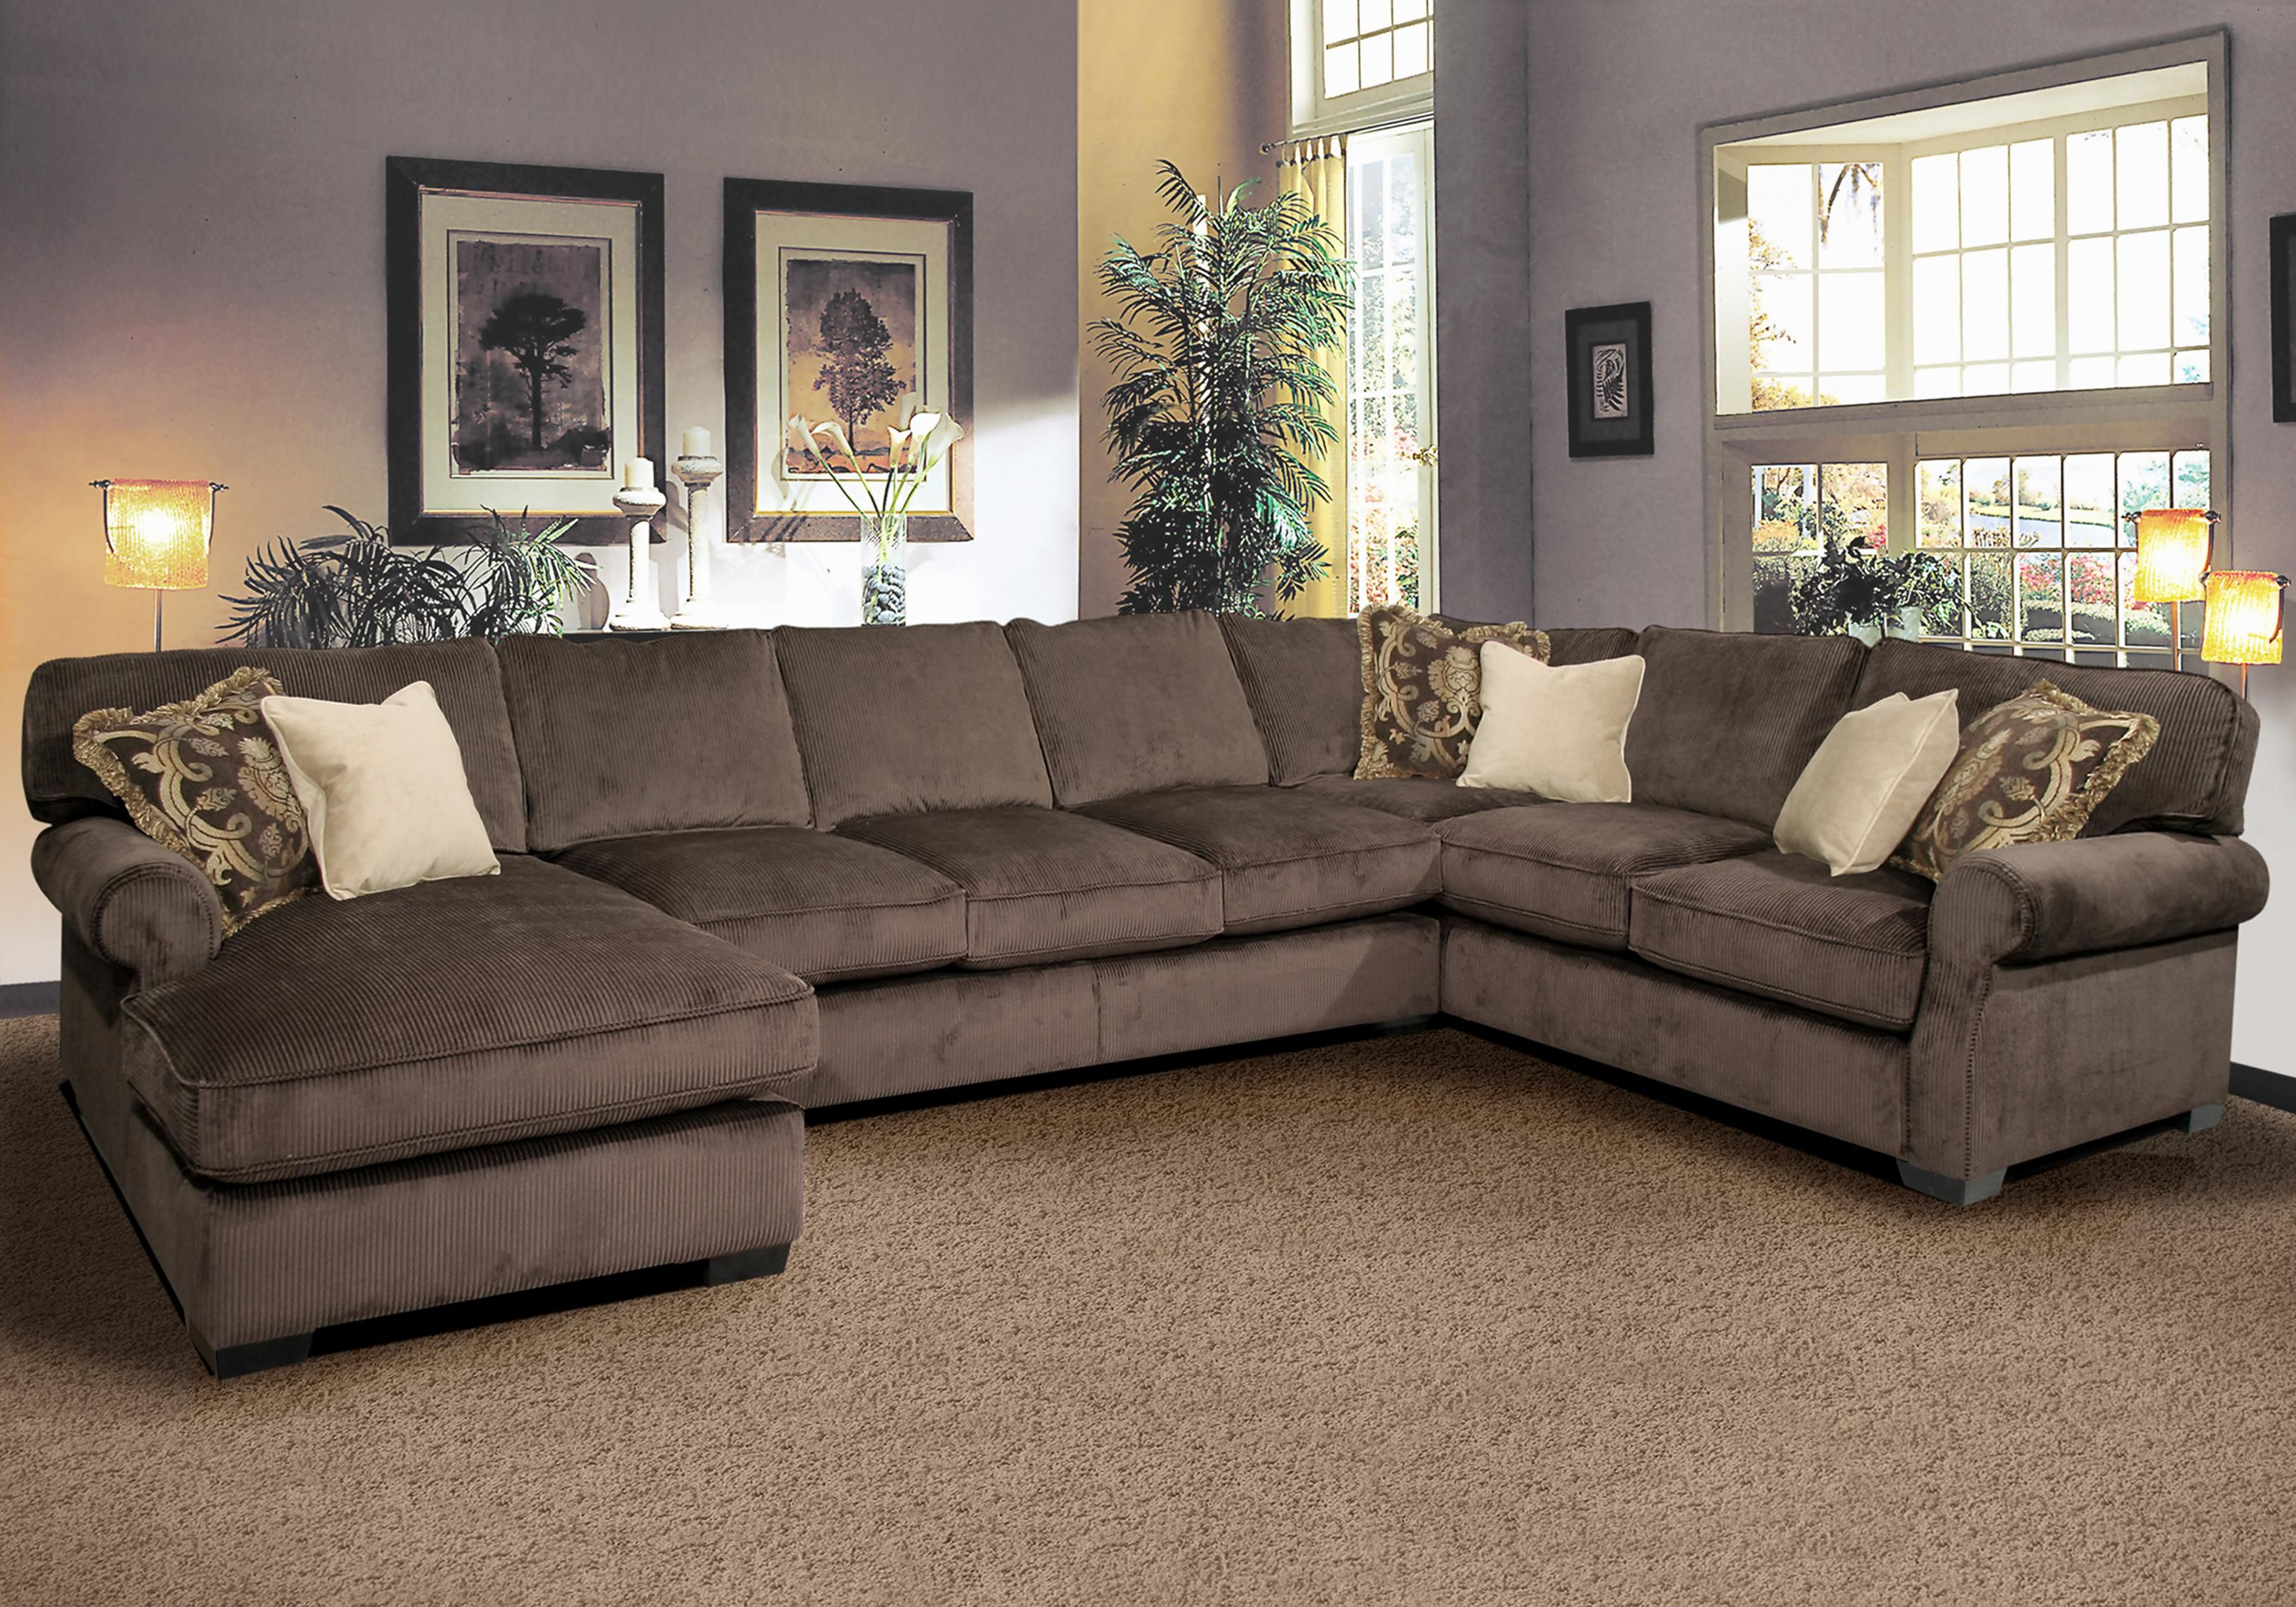 Grand Island 7 Seat Sectional Sofa By Fairmont Seating Home